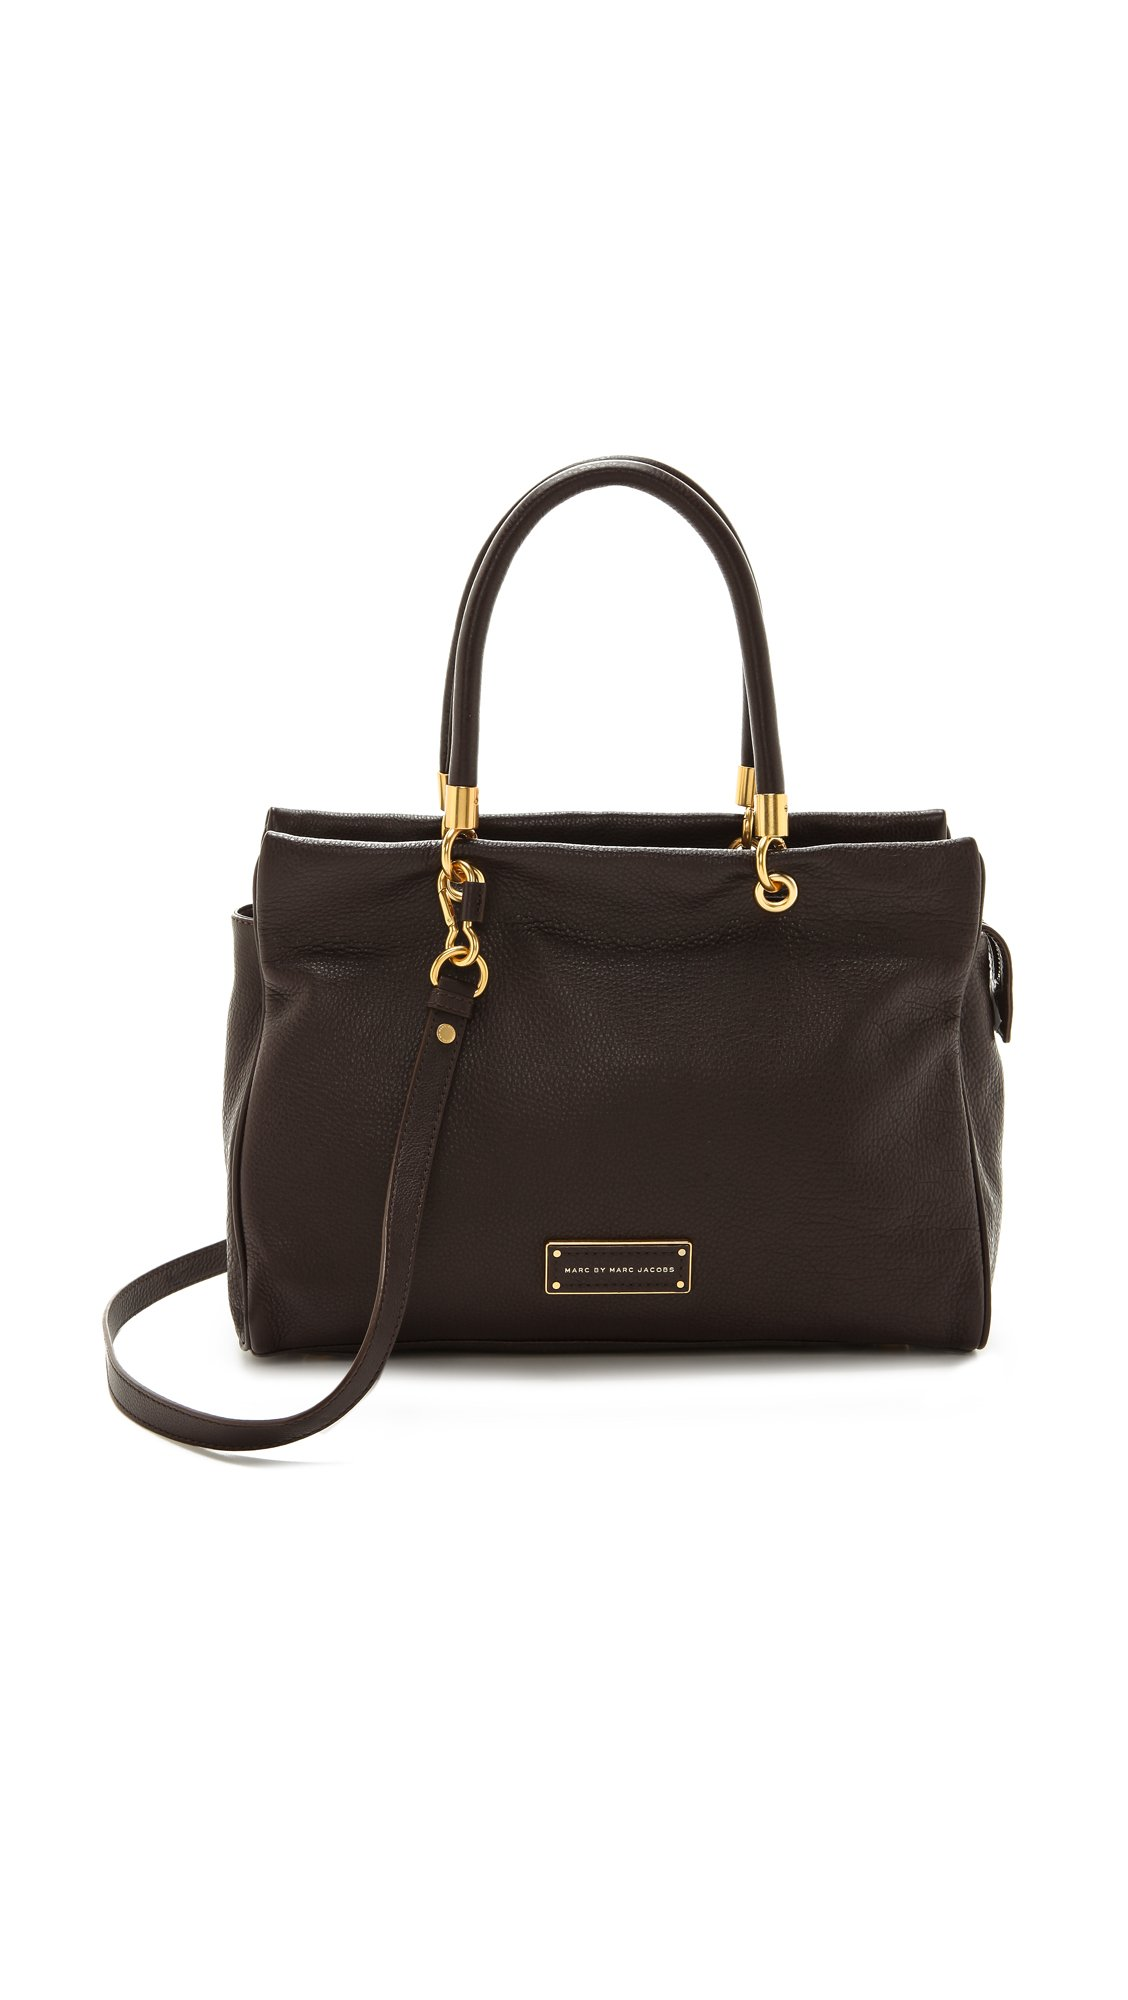 marc by marc jacobs too hot to handle tote in brown lyst. Black Bedroom Furniture Sets. Home Design Ideas